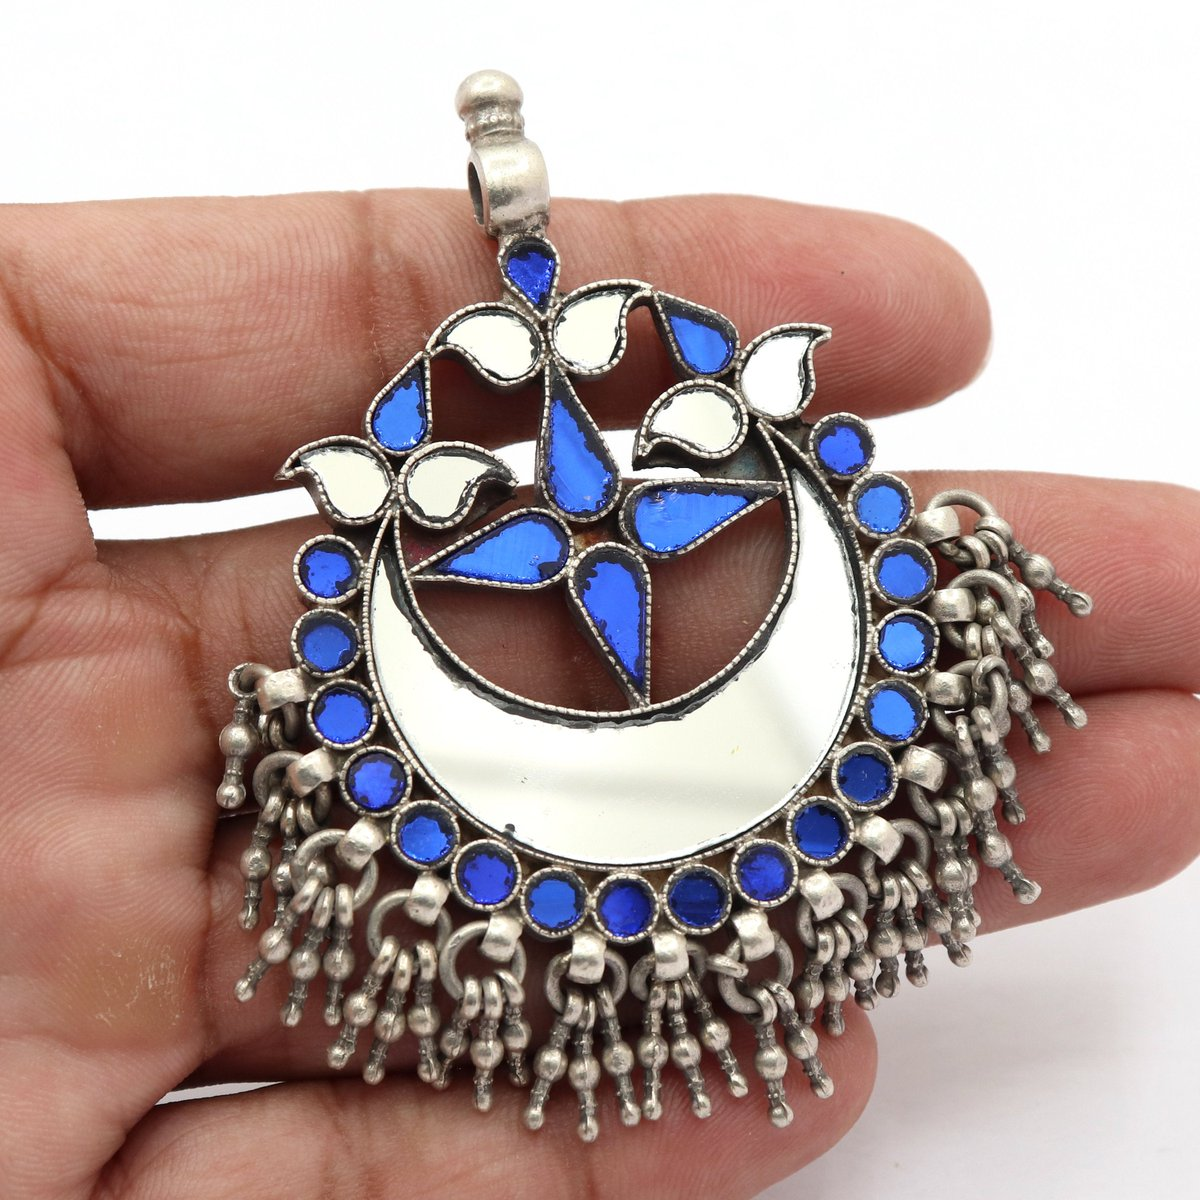 Excited to share the latest addition to my #etsy shop: Belgium Imported Glass 925 sterling Silver Antique pendant necklace tribal pendant Vintage Style Silver pendant Locket Blue Glass pendant  #white #anniversary #thanksgiving #people #blue #uni